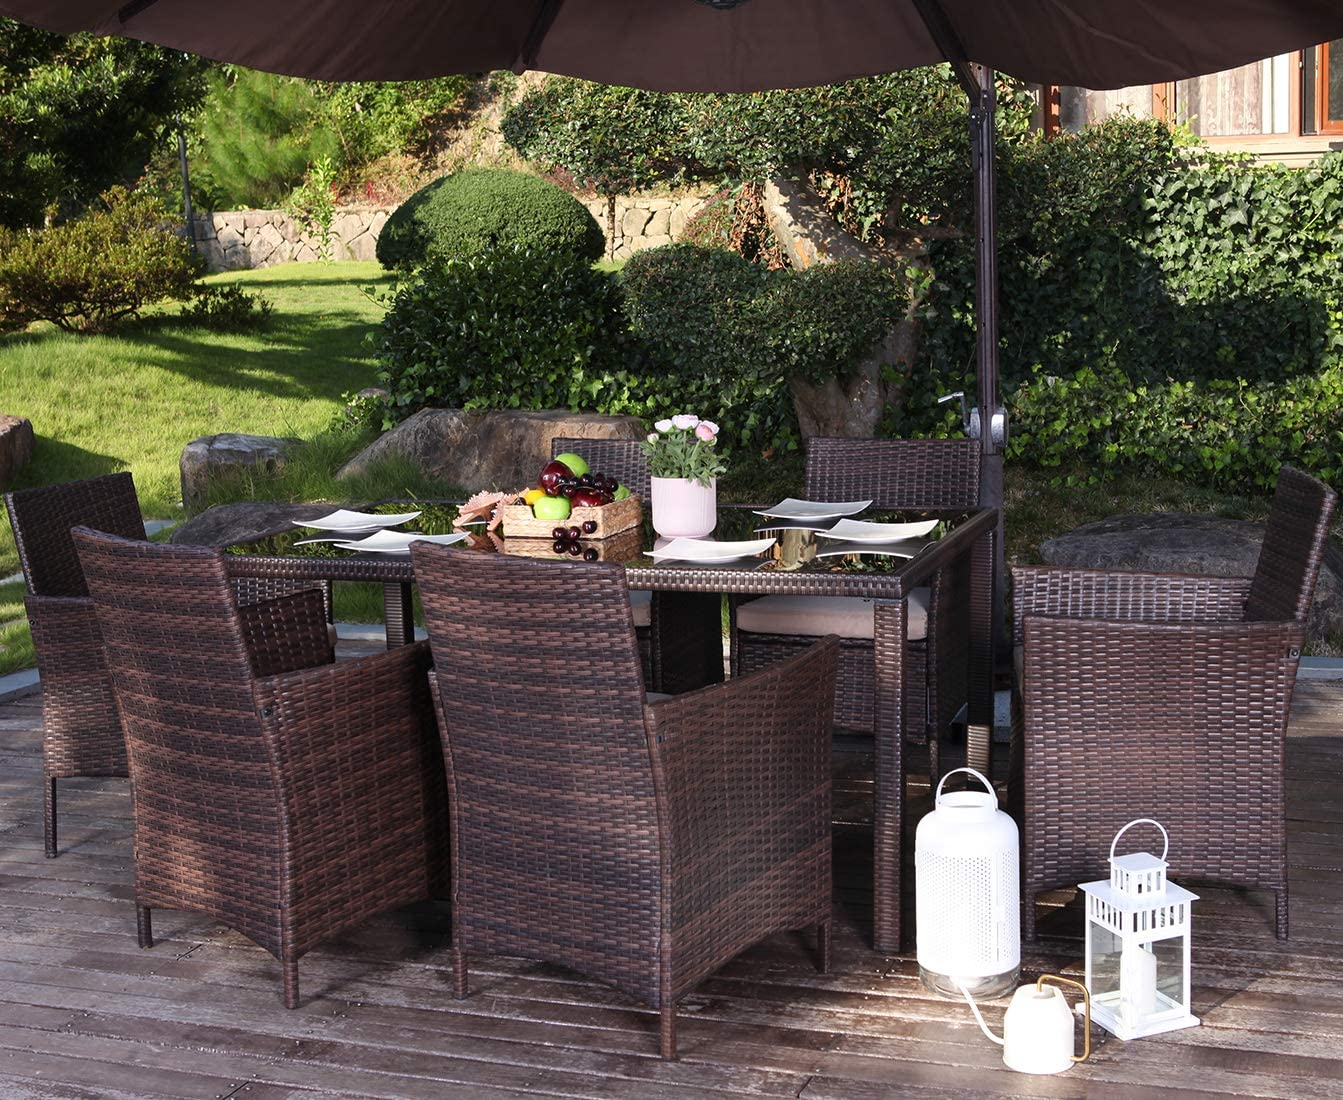 UFI 7 Pieces Patio Dining Sets Outdoor Space Saving Rattan Chairs with Glass Table Outdoor Wicker Dining Set Cushioned Seating, Perfect for Balcony Patio Garden Poolside, Brown